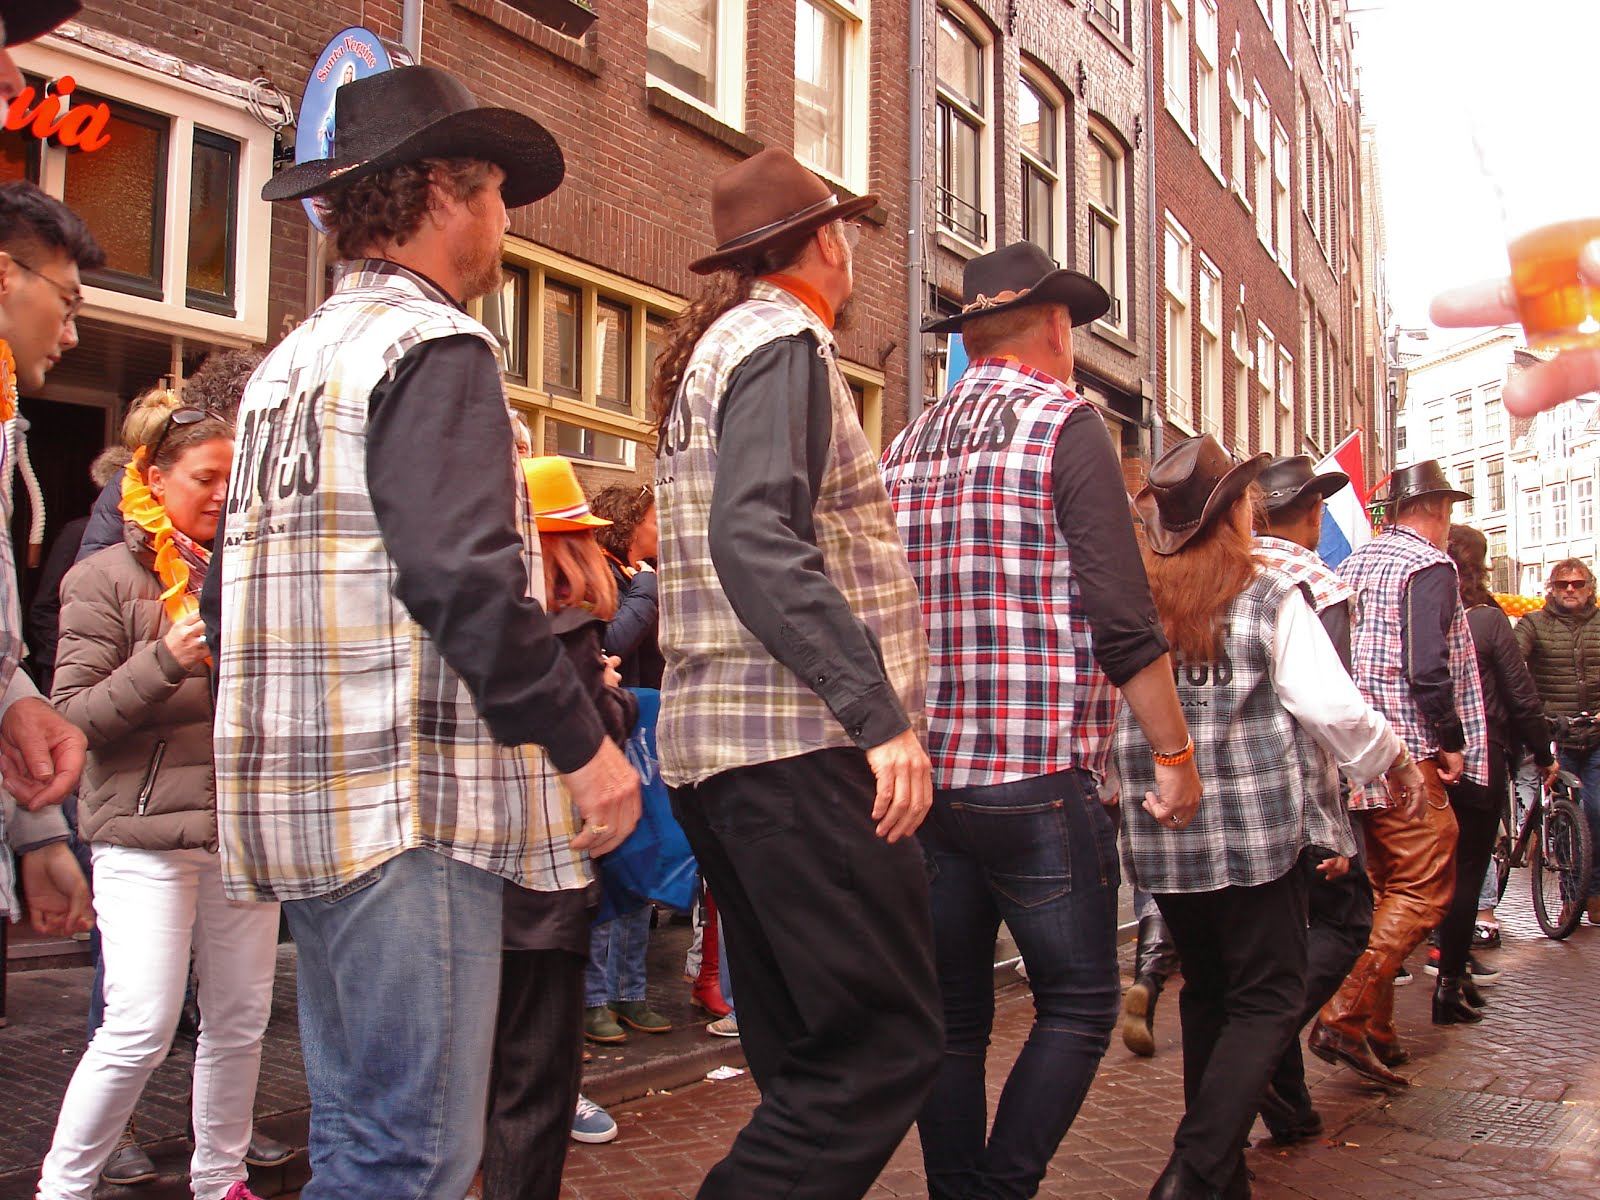 dancing in the streets - koningsdag 2016